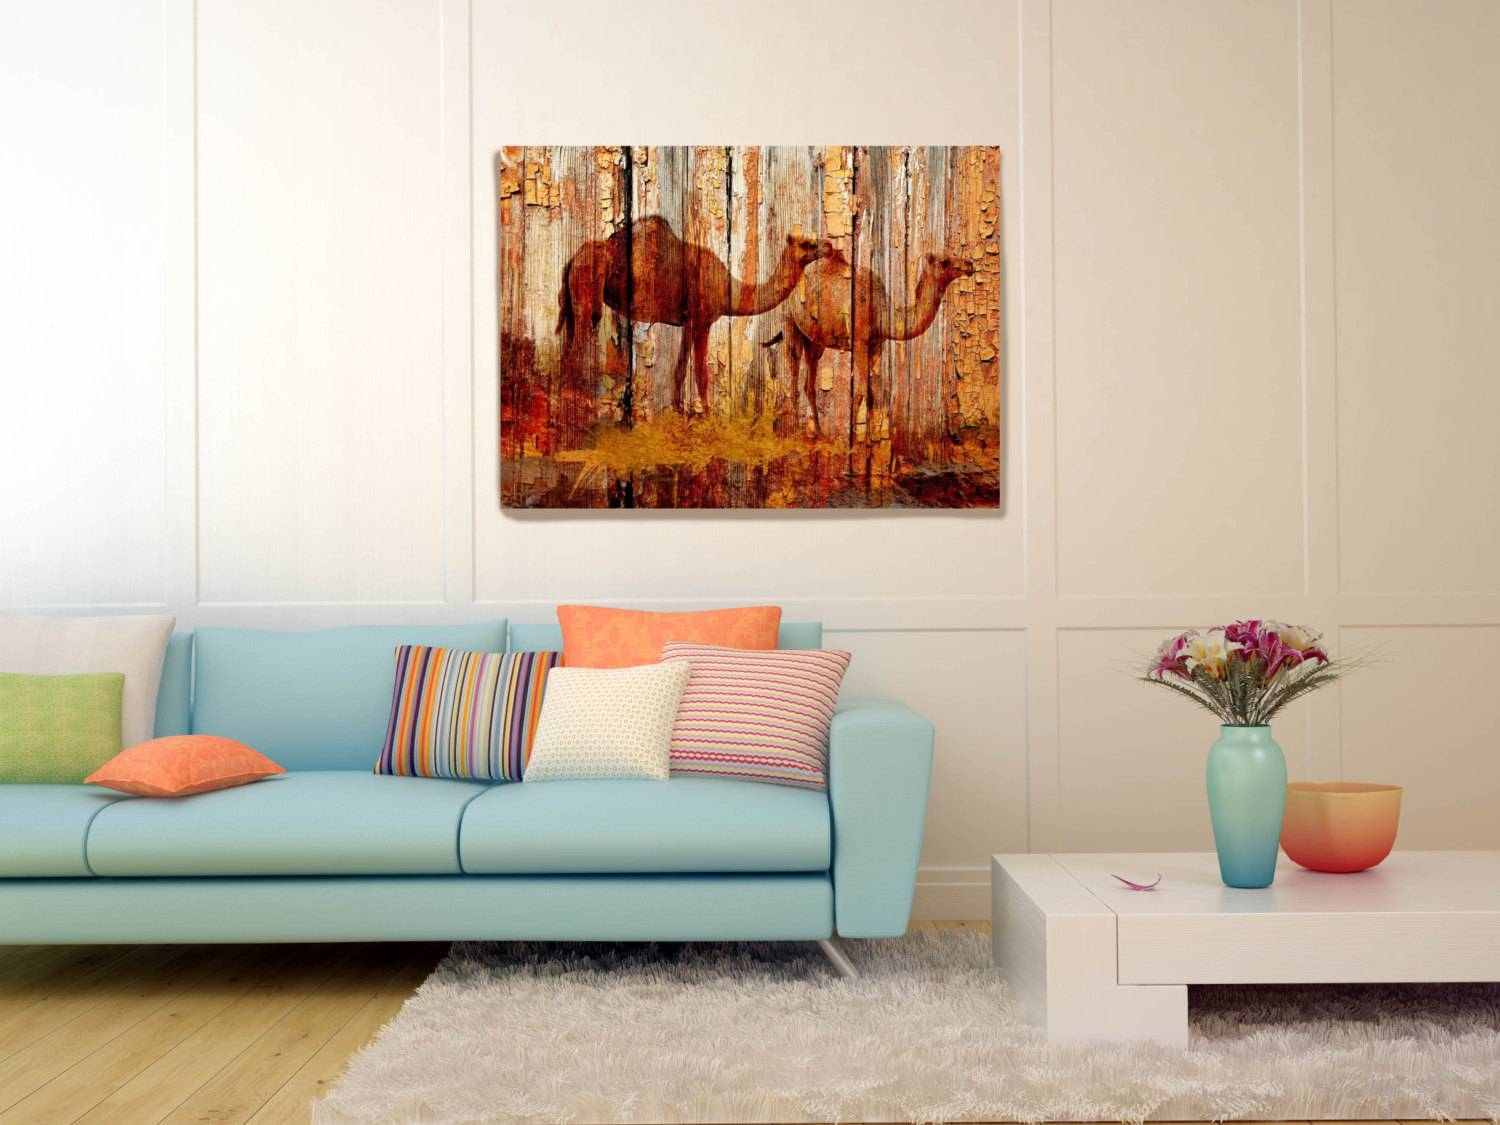 Camels On Wood Plank Canvas Wall Art Print Large Camel Canvas With Most Current Big Canvas Wall Art (View 3 of 20)